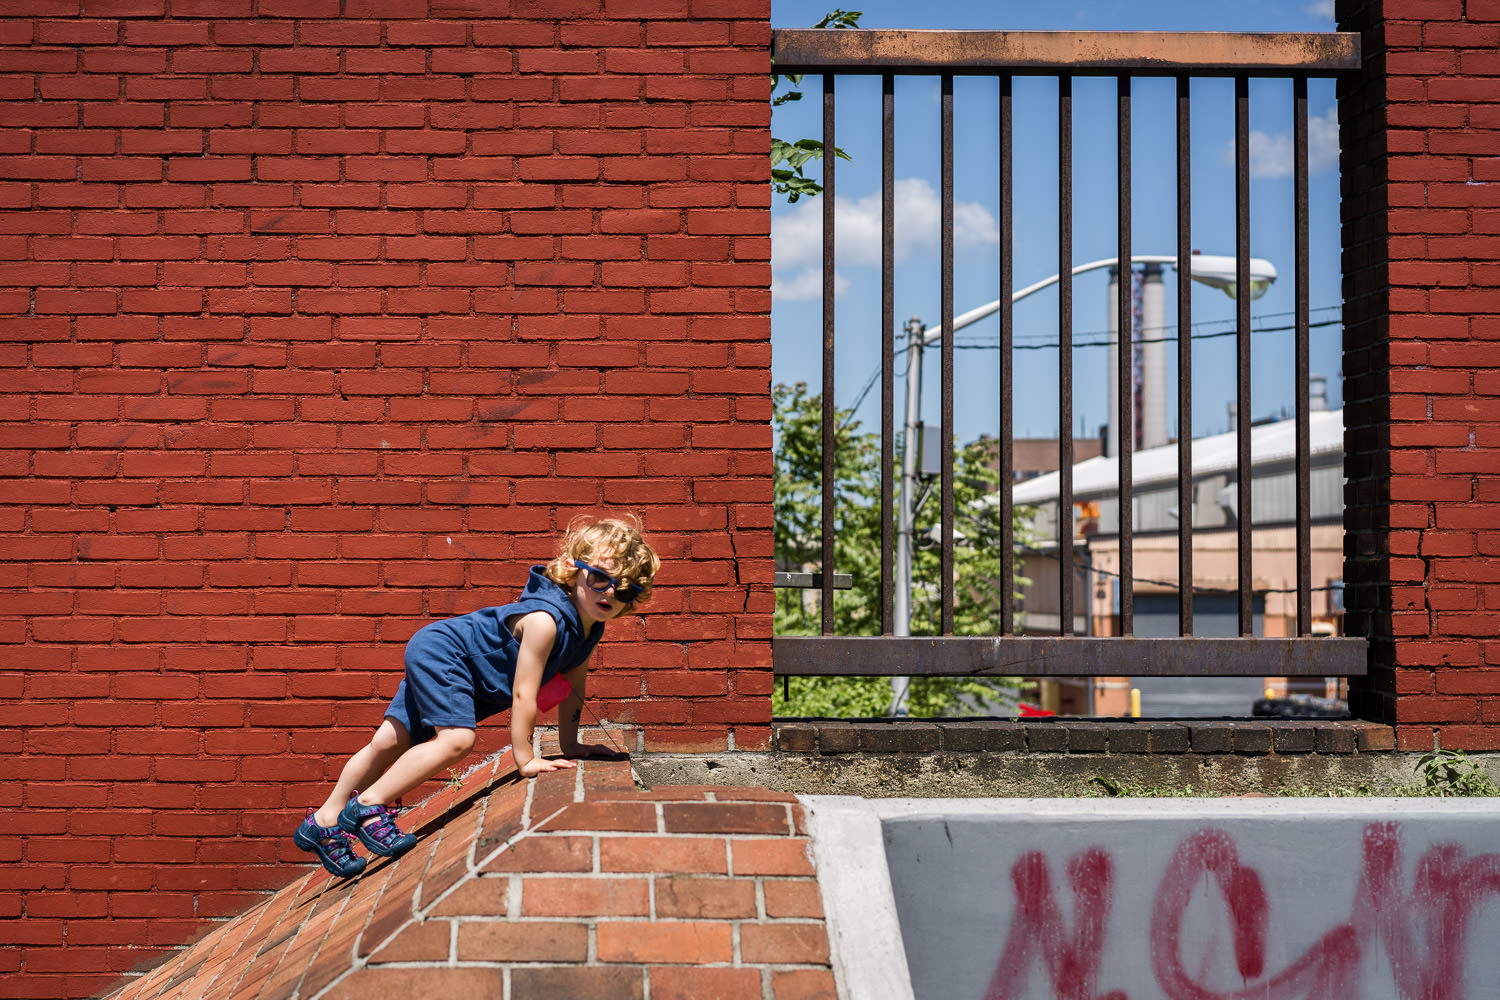 A little boy climbs a brick structure.